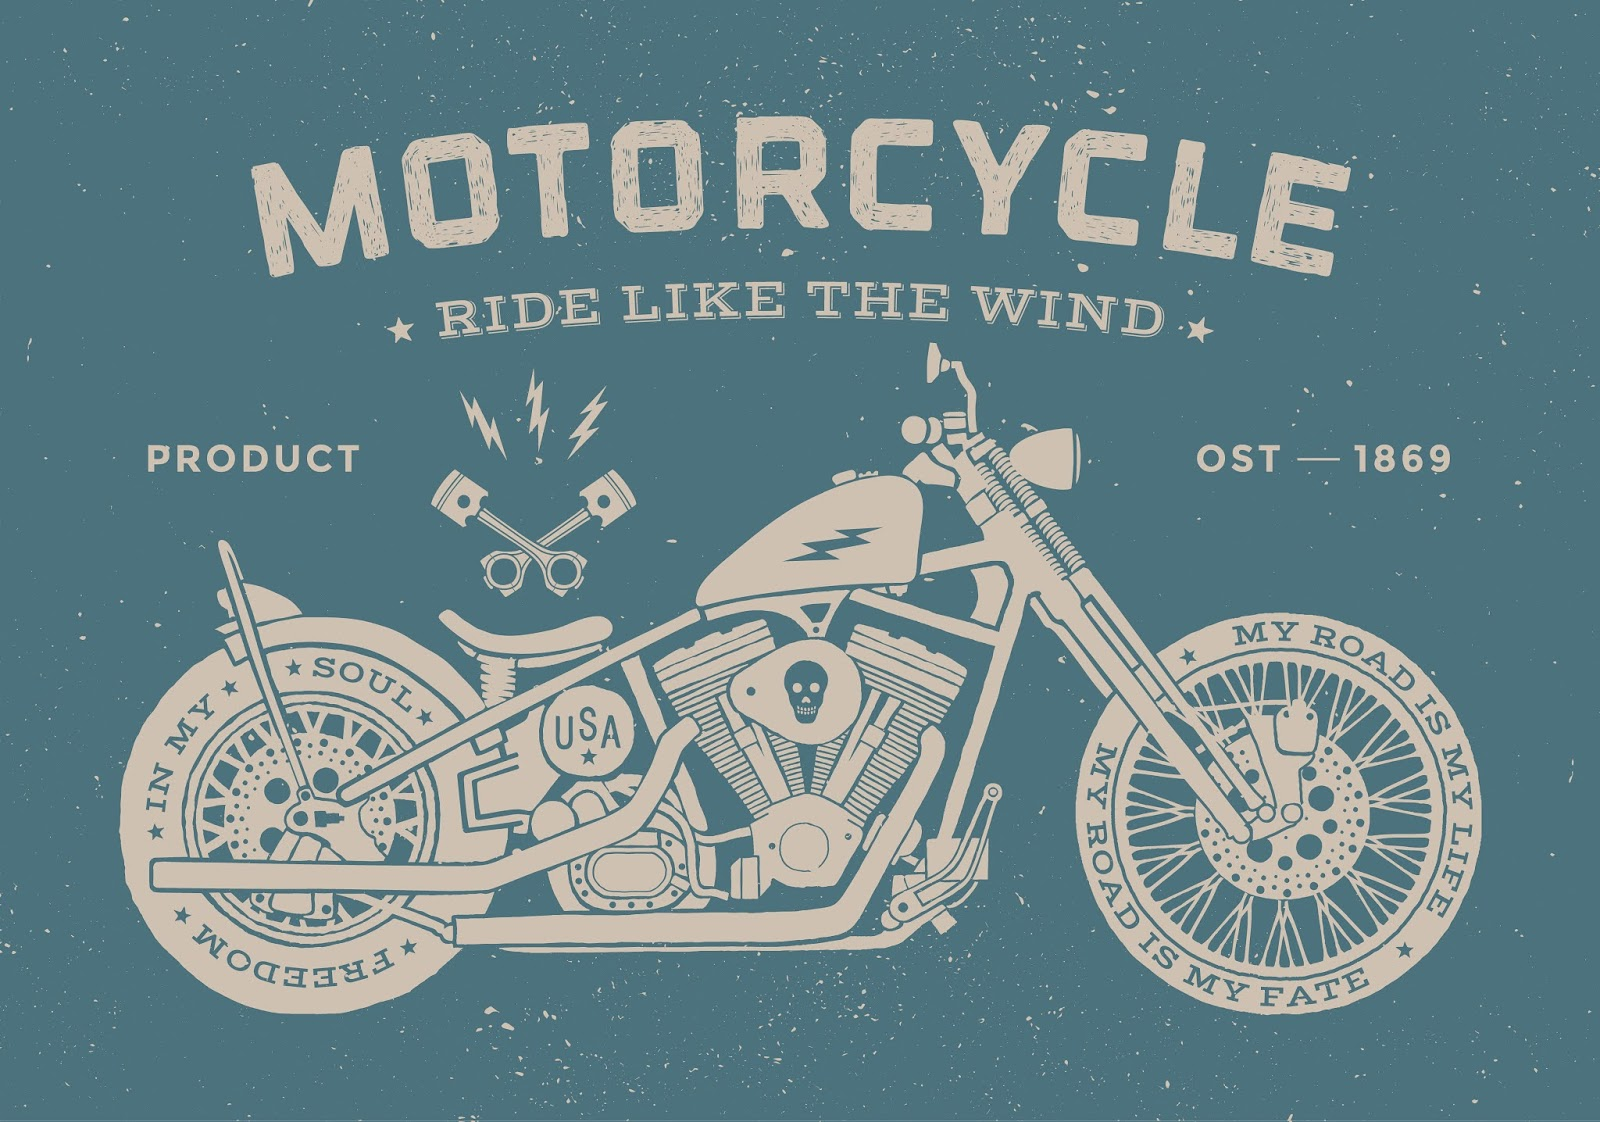 Vintage Race Motorcycle Old School Style Vector Illustration	 Free Download Vector CDR, AI, EPS and PNG Formats